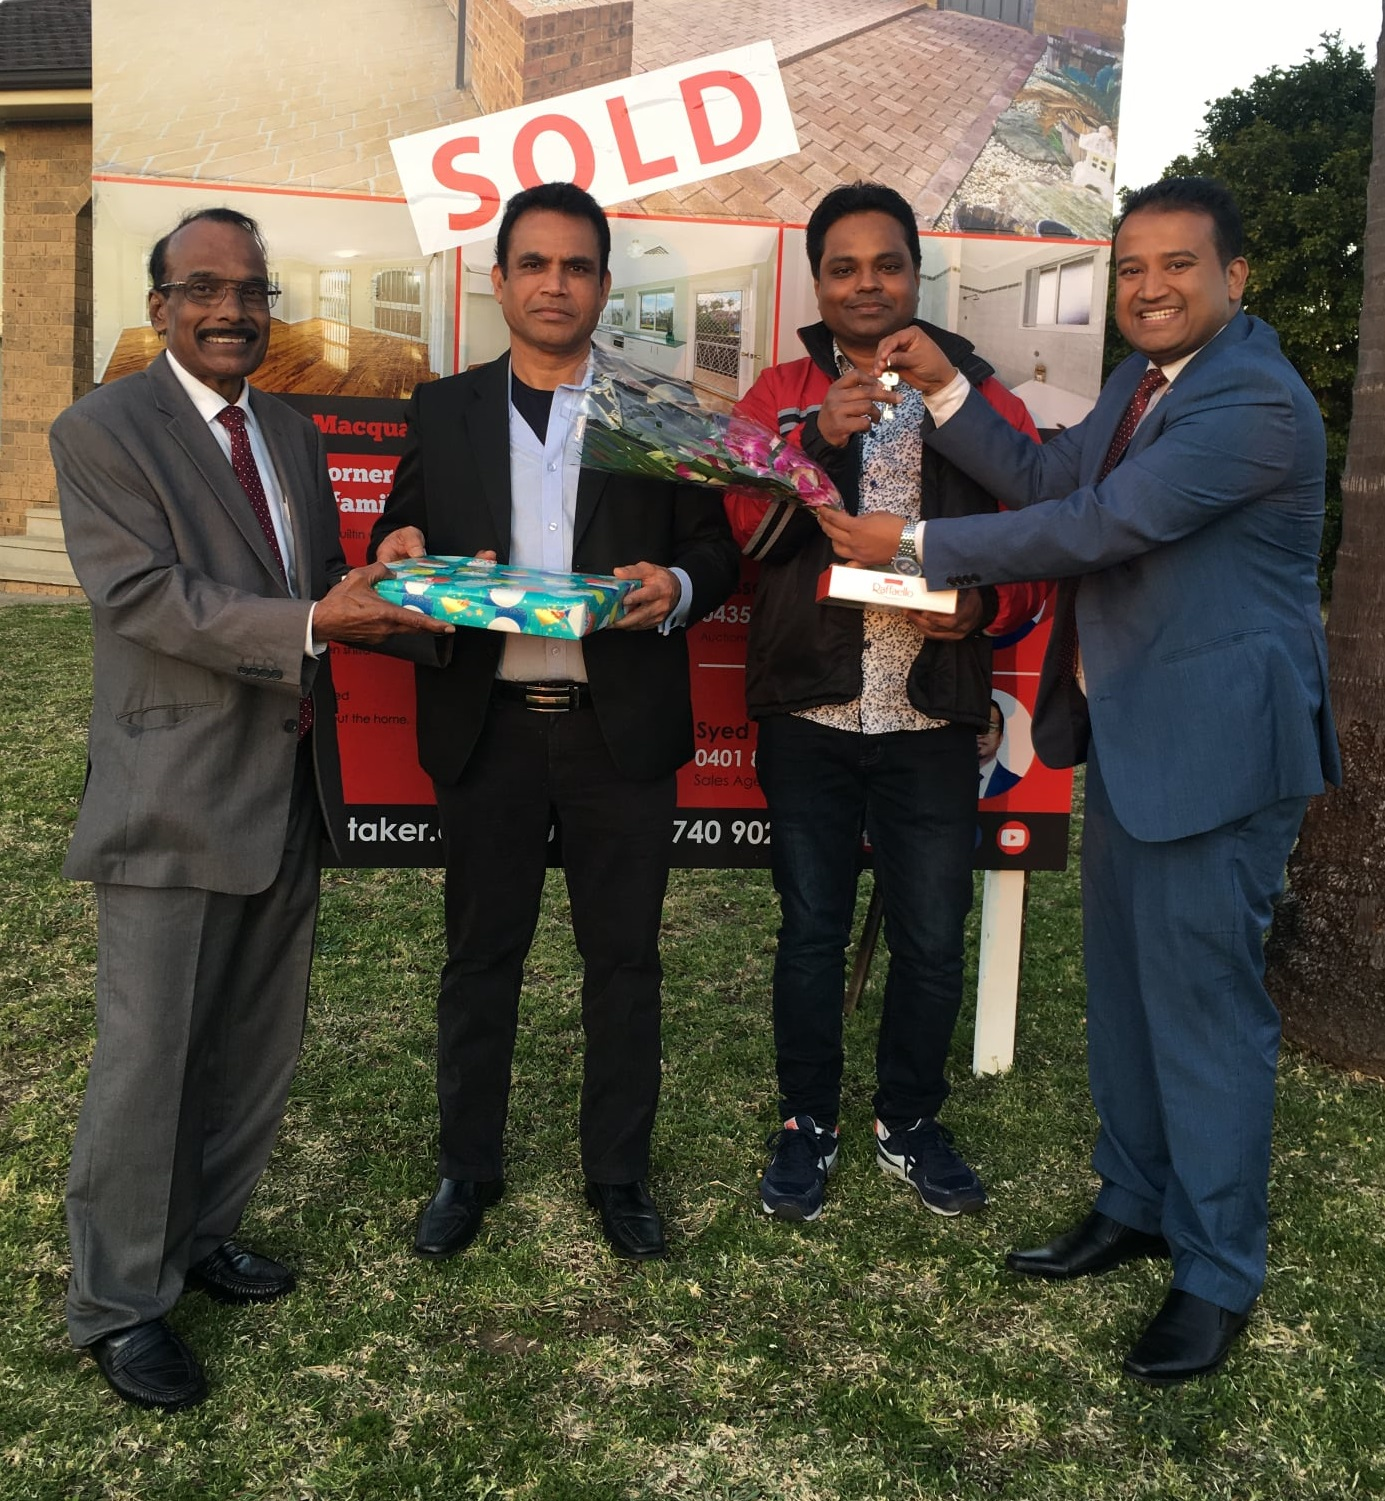 1 Ficus place macquaire fields NSW 2564 sold key hand over